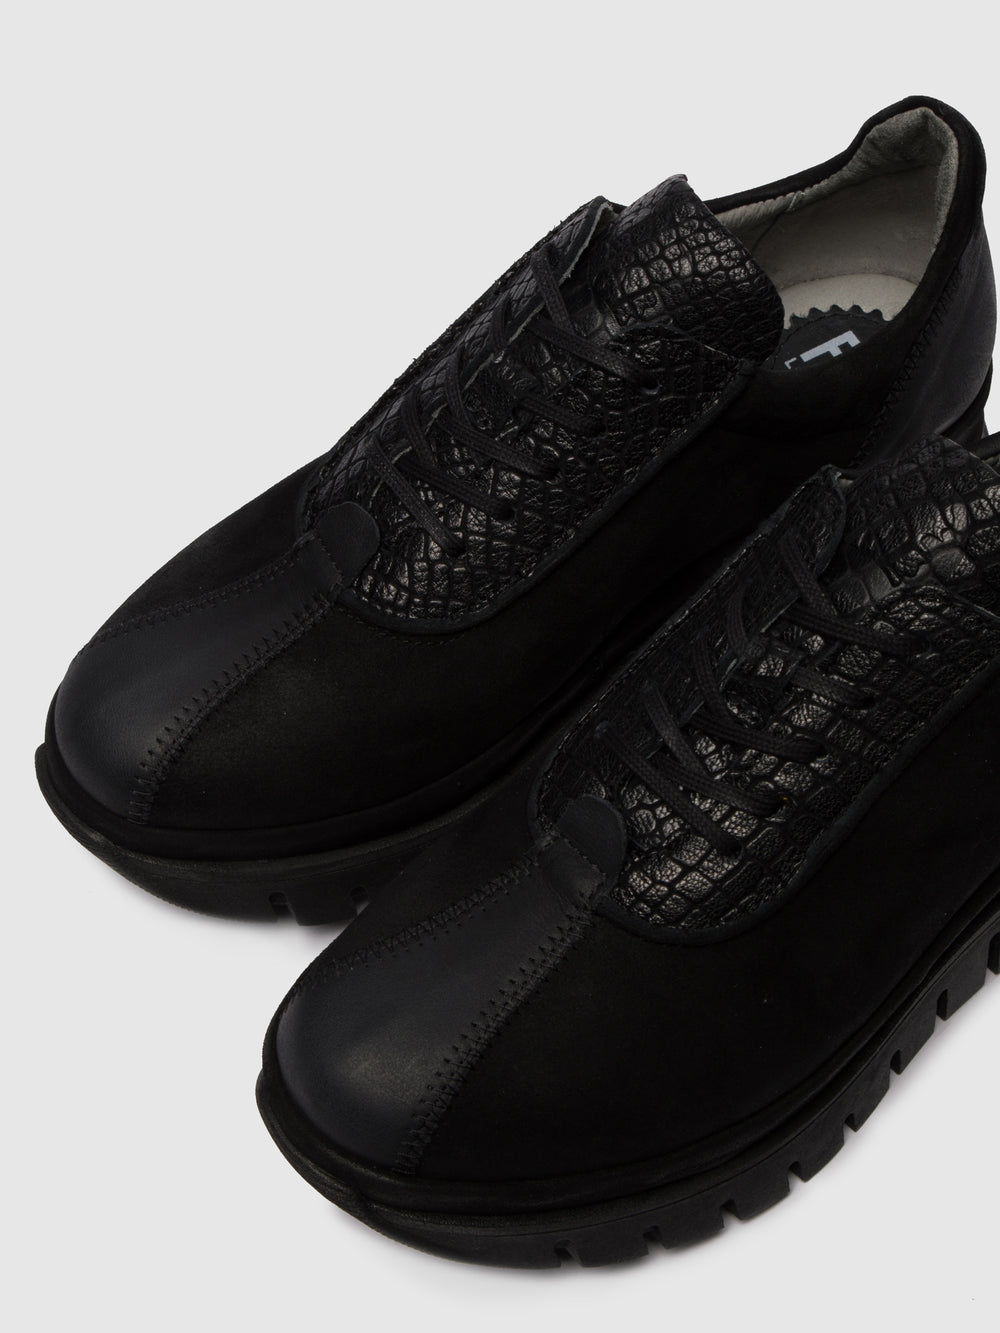 Lace-up Trainers BESI203FLY VERONA/CROCO/SILKY BLACK